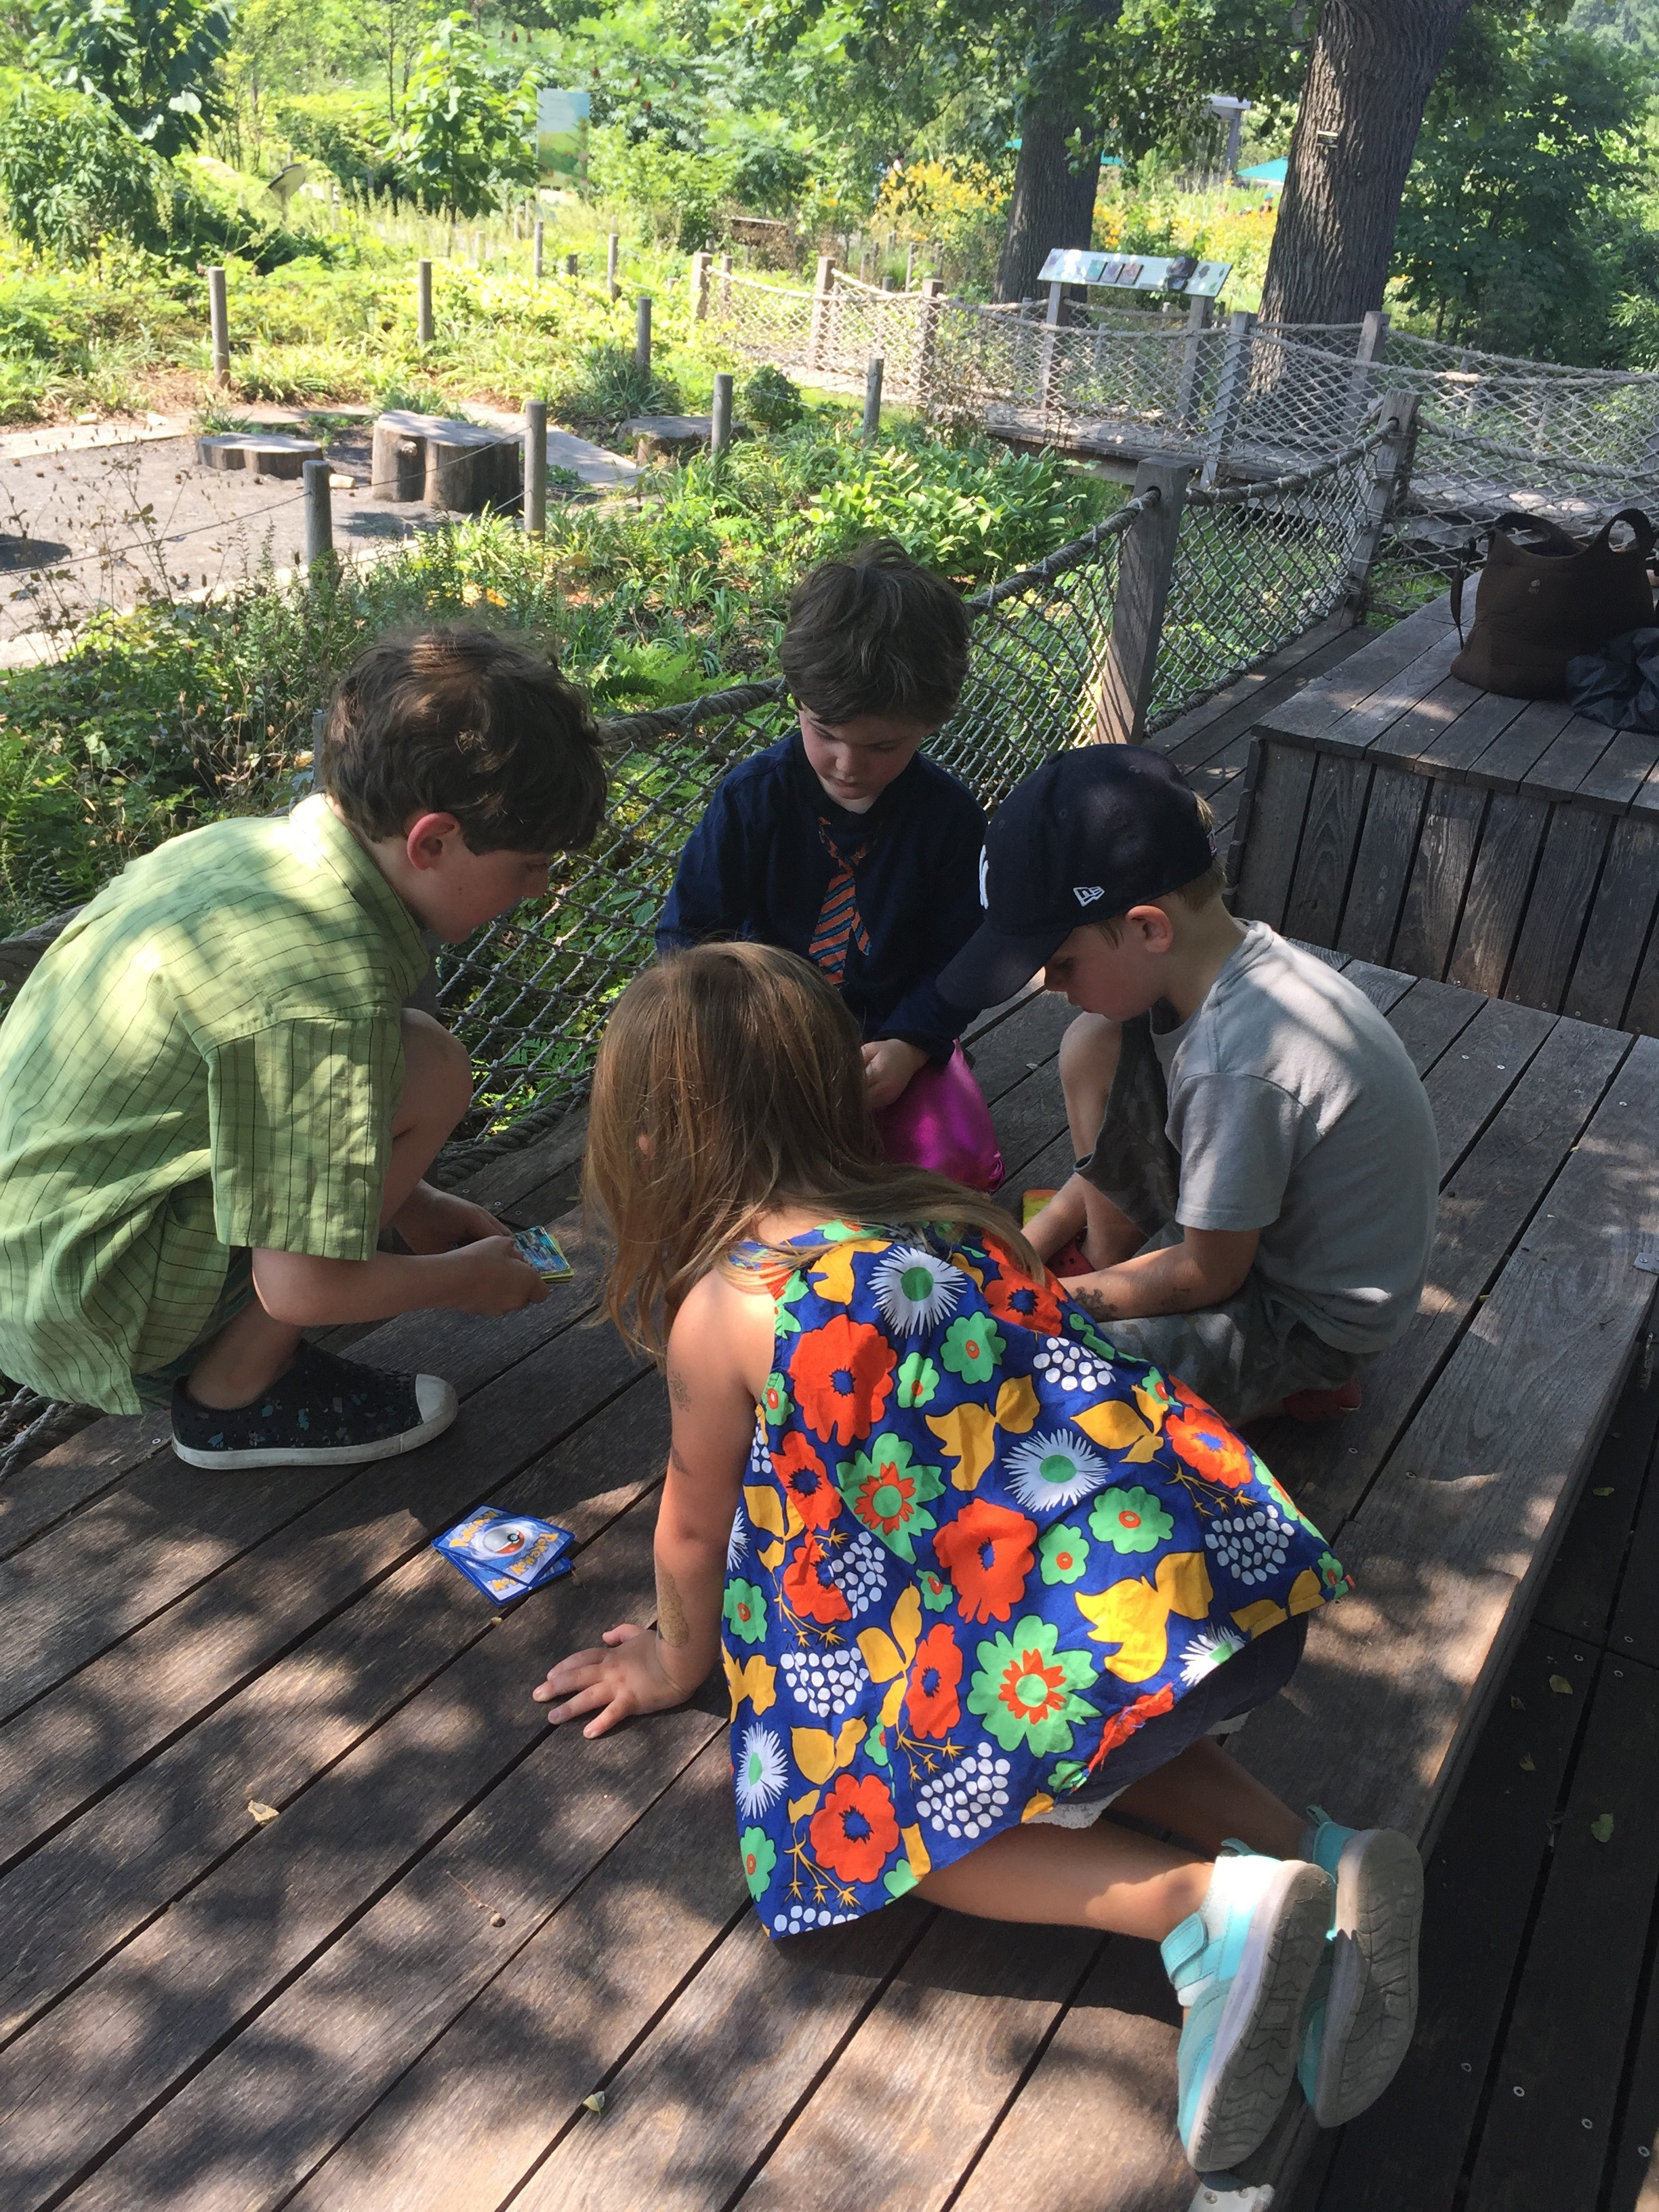 Pictured: kids ignoring nature in favor of Pokémon cards. ¯\_(ツ)_/¯